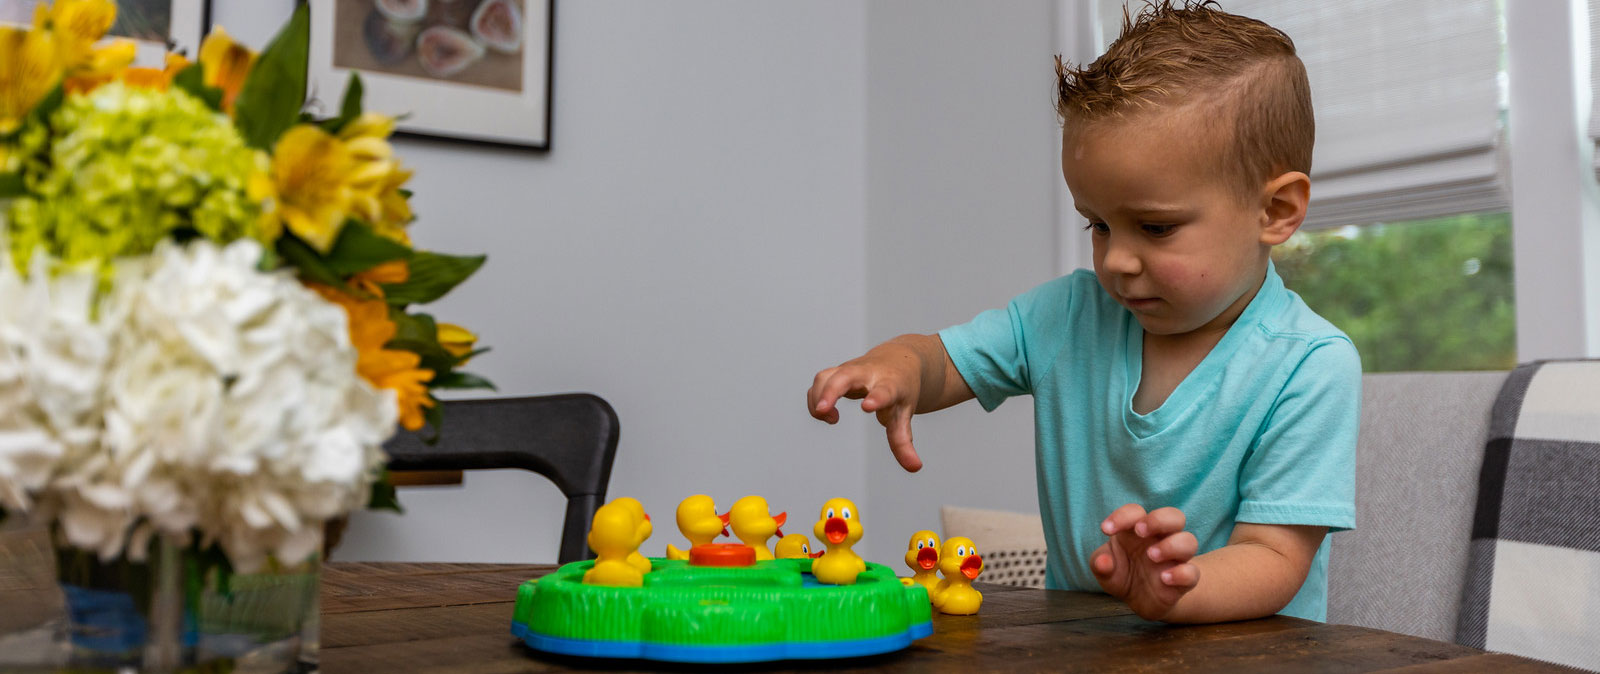 Occupational Therapy - Autism FIRST - Therapy & Service in Northern, VA